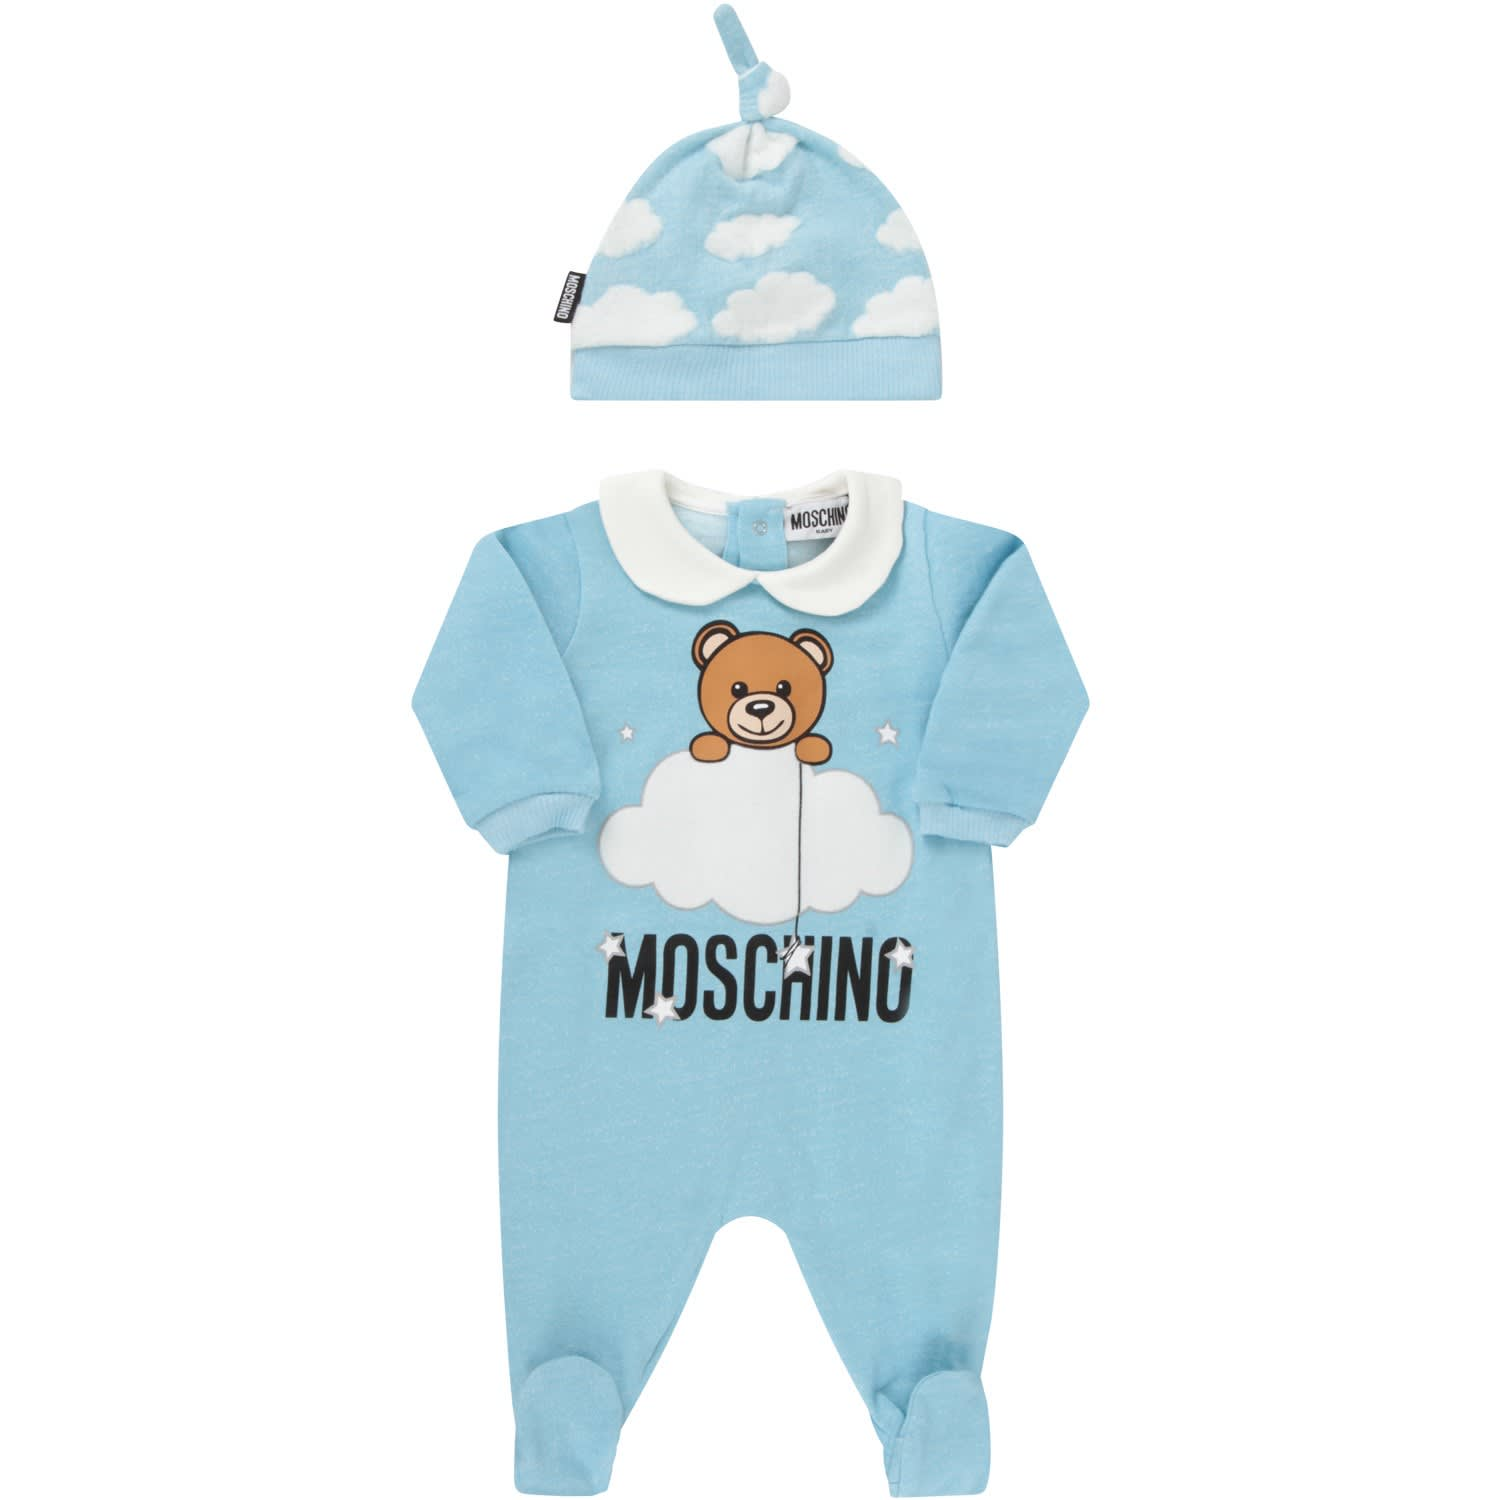 Moschino Cottons LITHT BLUE AND GREY SUIT WITH TEDDY BEAR AND CLOUDS FOR BABYKID